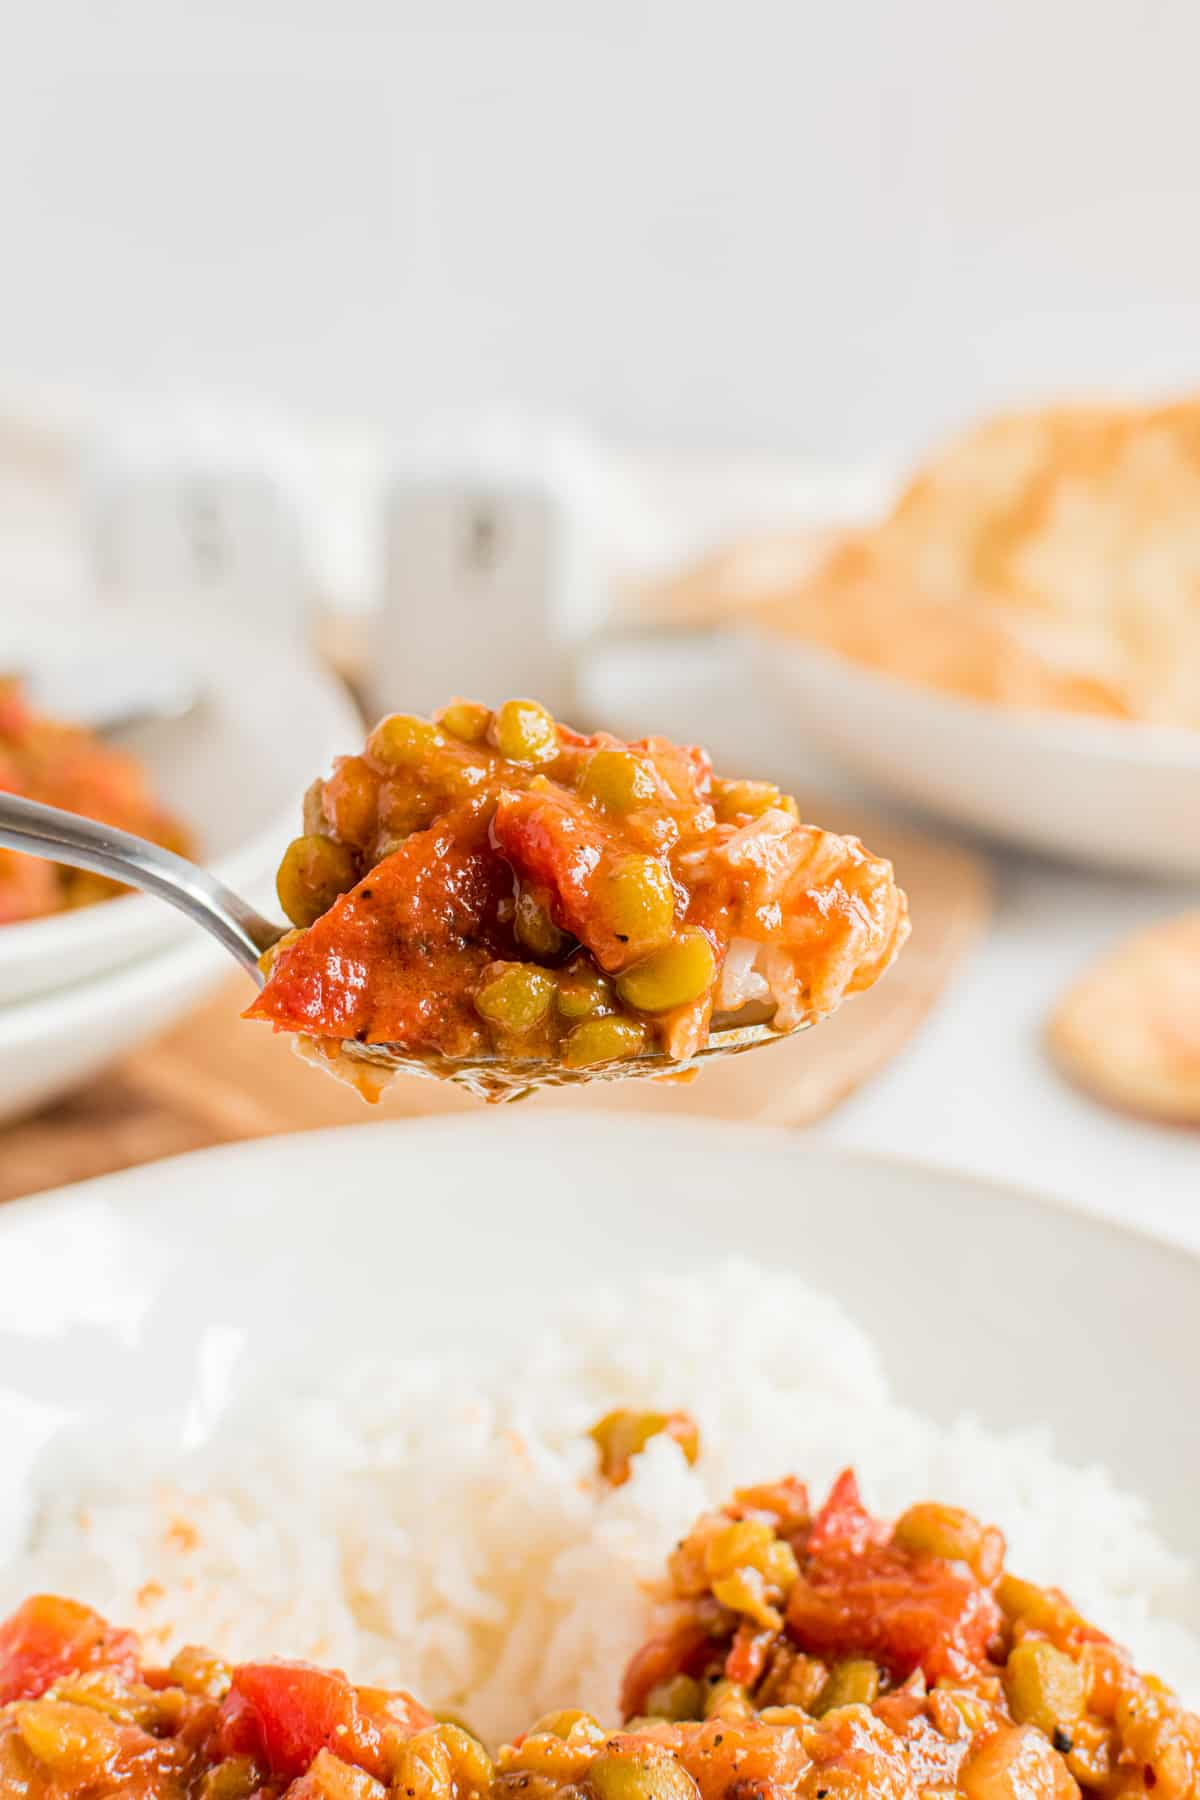 A spoon holds a bite full of Split Pea Curry.